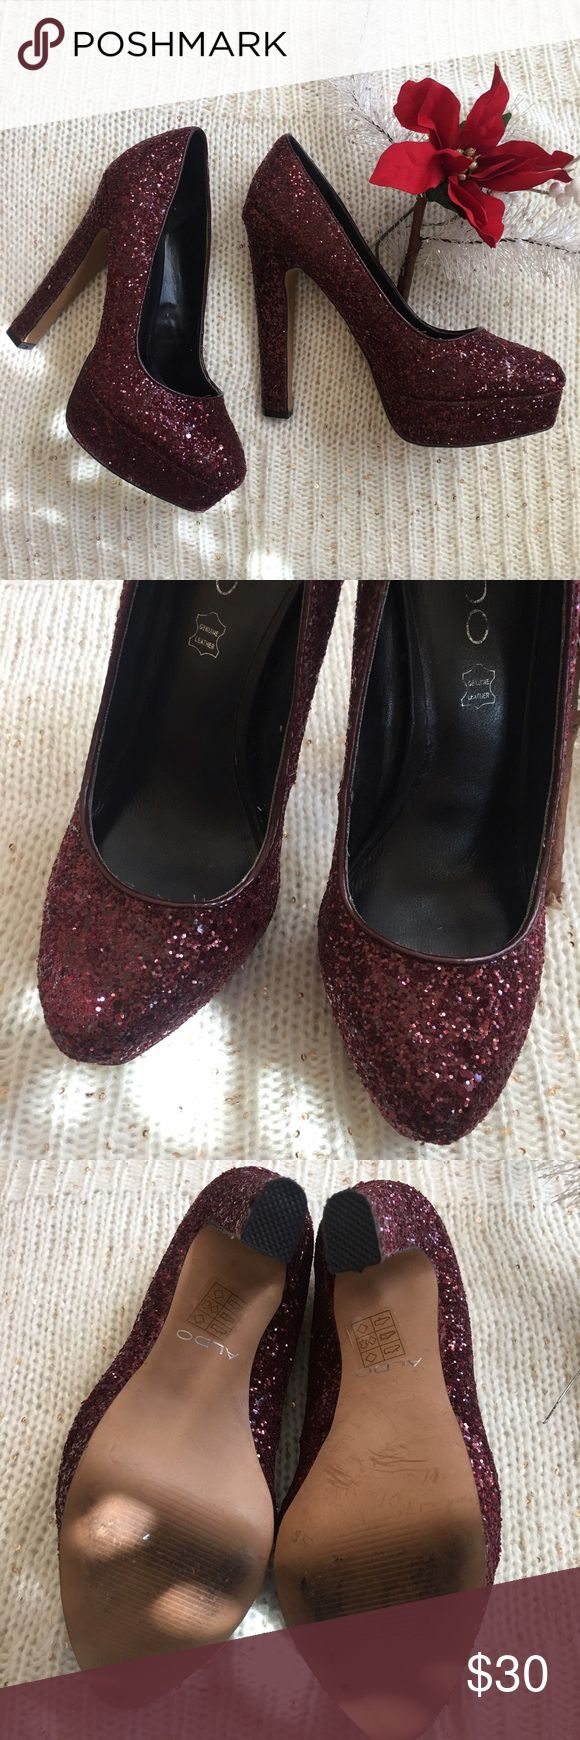 Burgundy Glitter Pumps Gorgeous glitter pumps from Aldo! Gently worn and have plenty of life left. They are leather and fabulously constructed! Aldo Shoes Heels